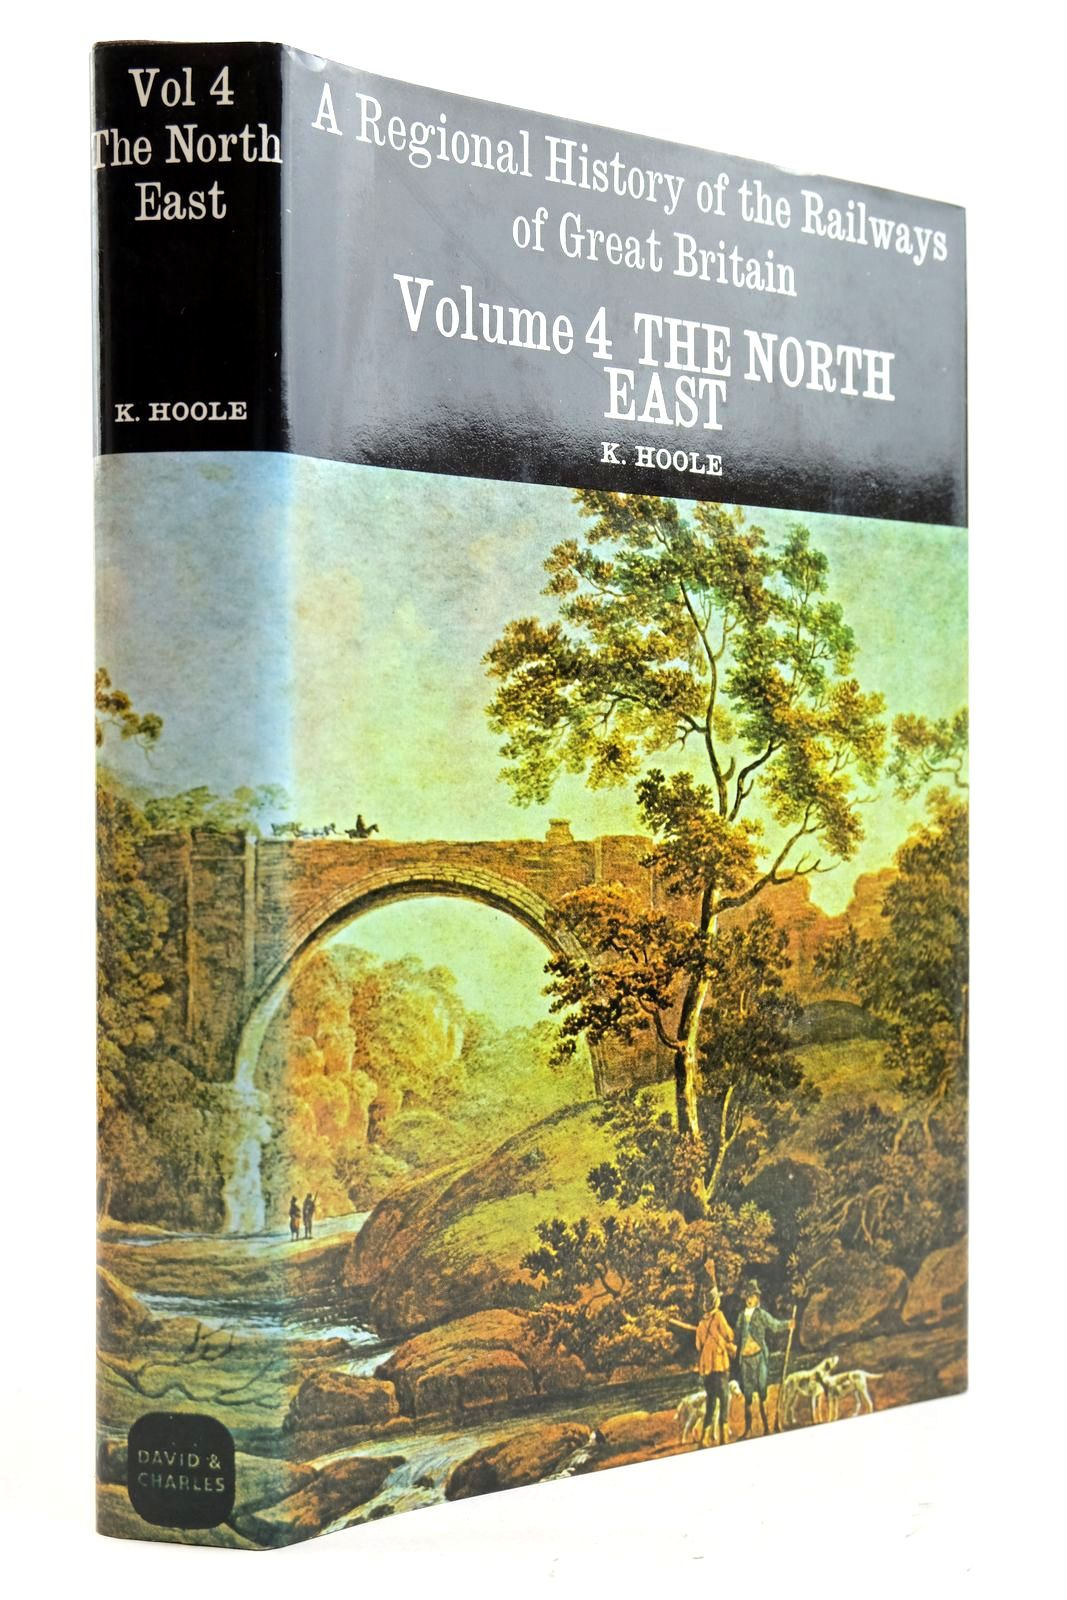 Photo of A REGIONAL HISTORY OF THE RAILWAYS OF GREAT BRITAIN VOLUME IV THE NORTH EAST written by Hoole, Ken published by David St John Thomas, David & Charles (STOCK CODE: 2133051)  for sale by Stella & Rose's Books